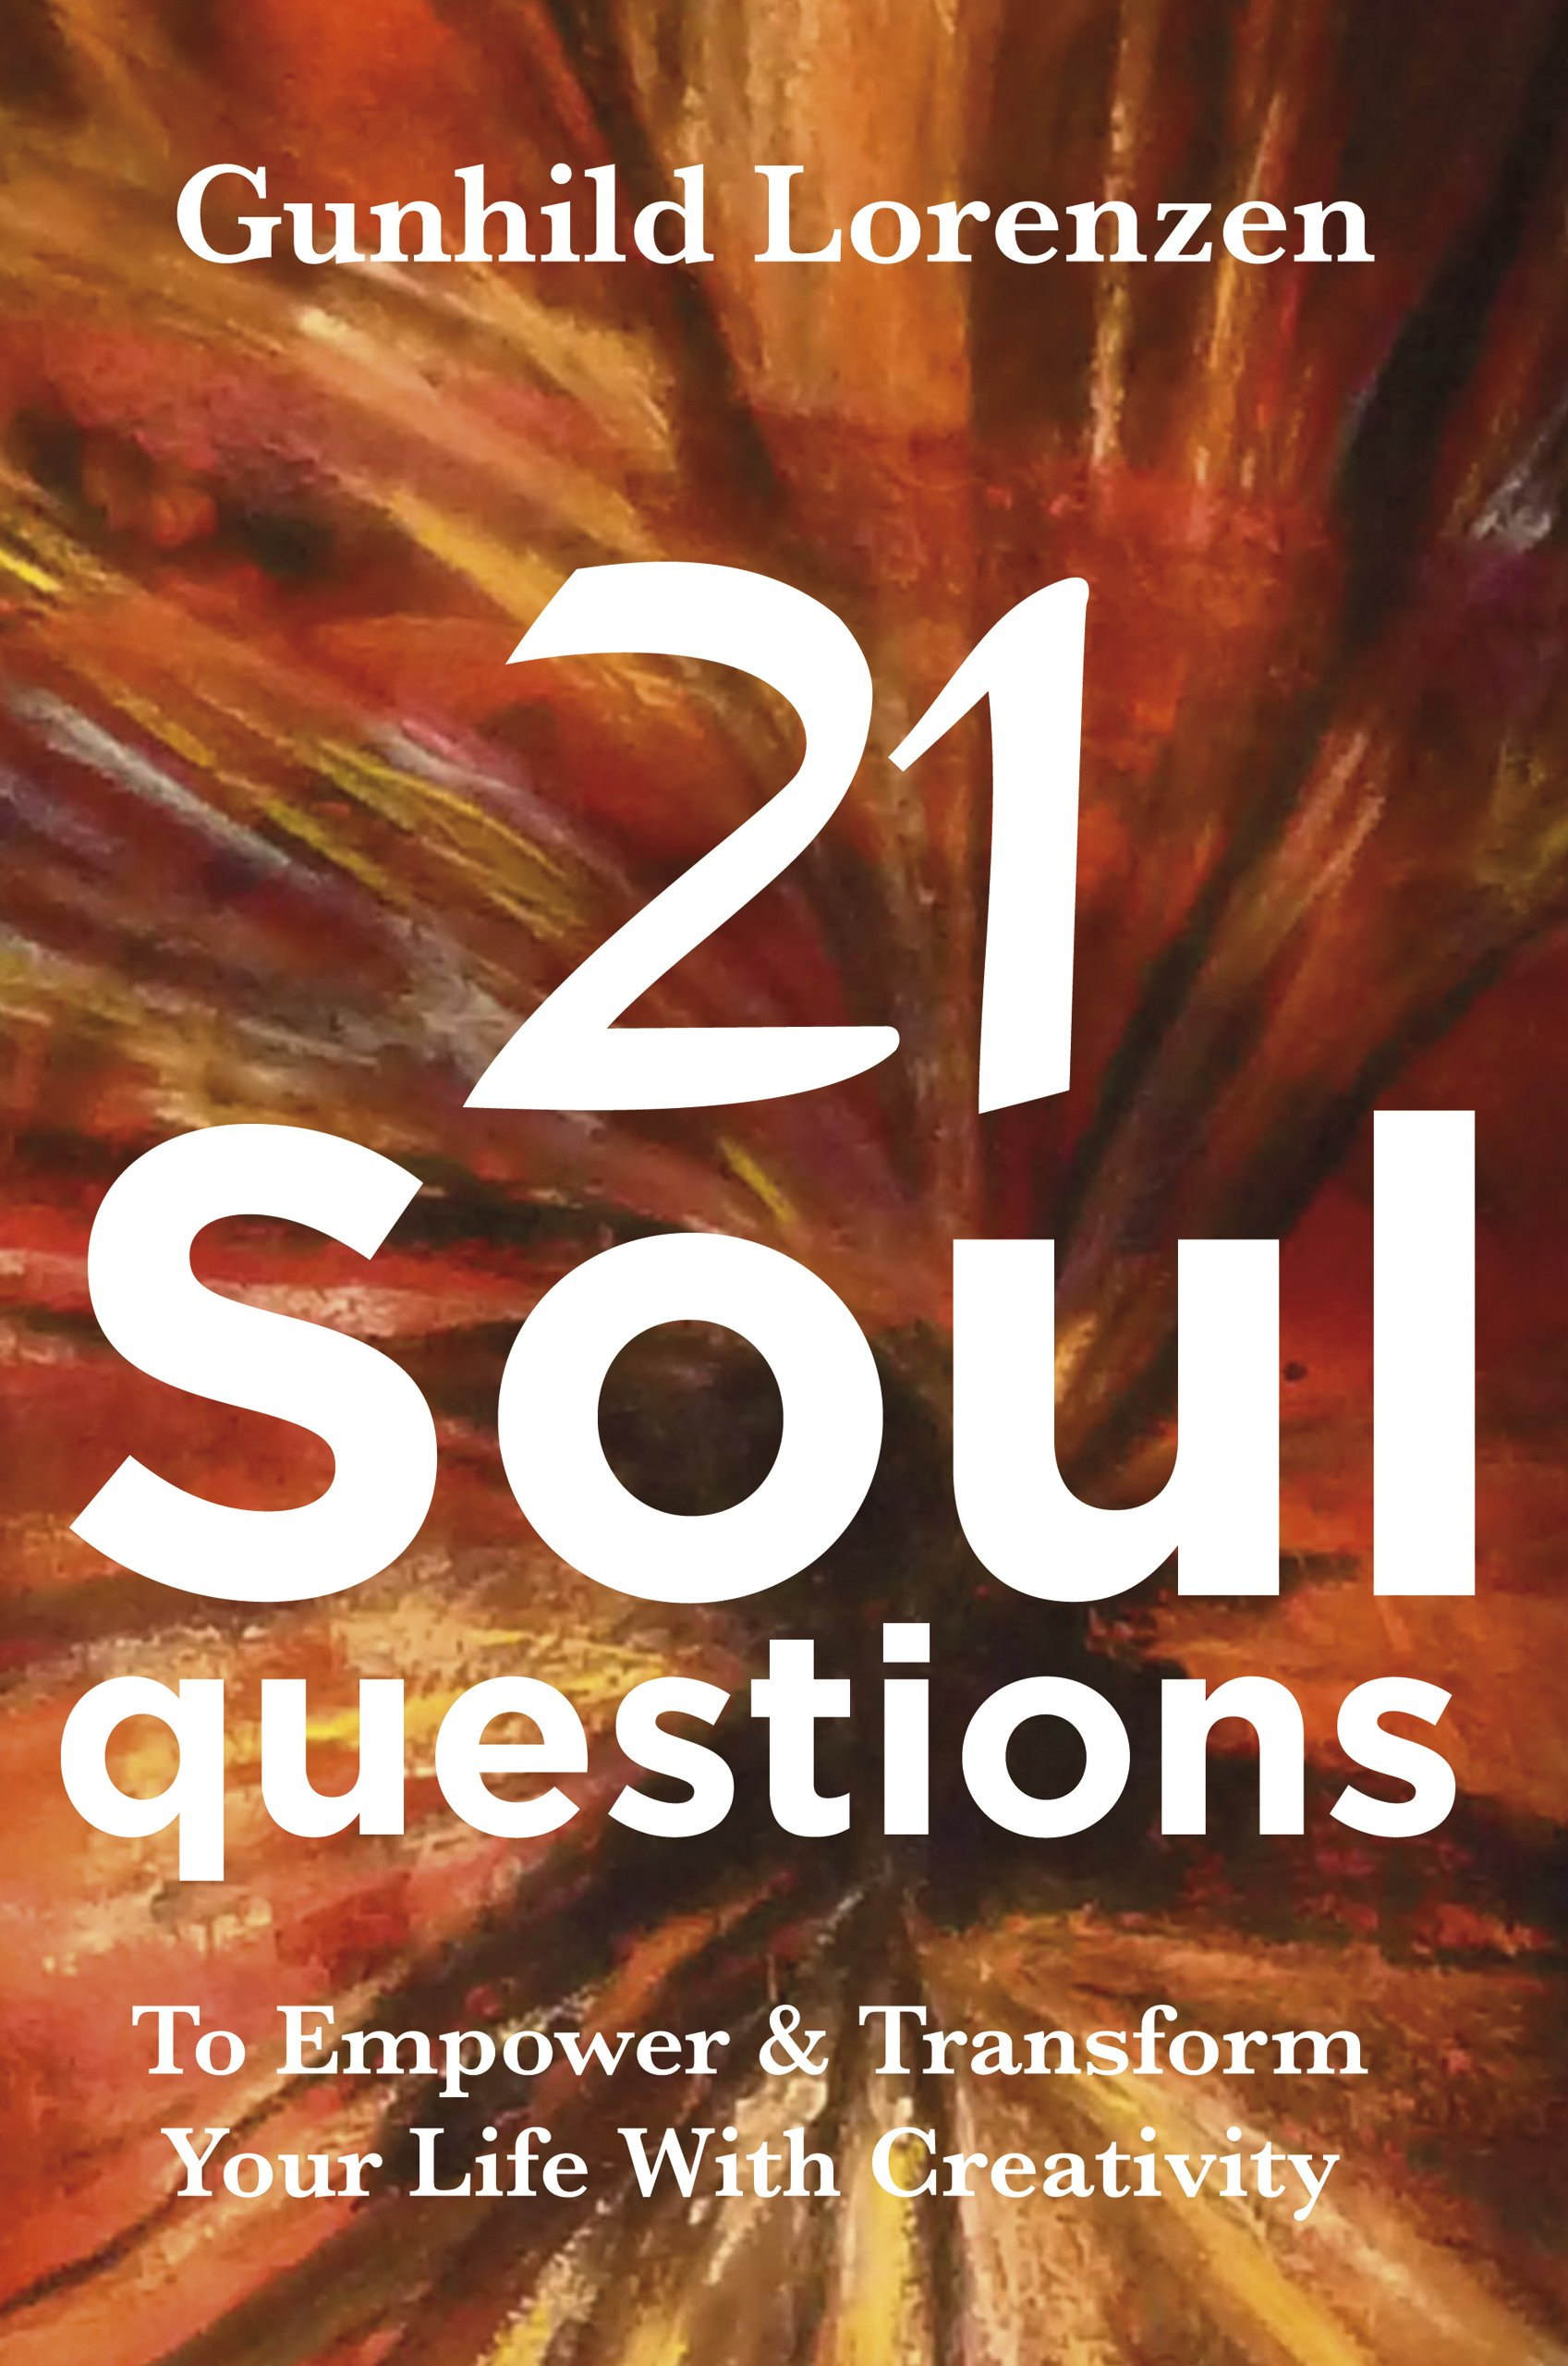 21 Soul Questions   The Art Journaling Way To Self Discovery Self   Compassion And Your Authentic Self  Learn How To Empower And Transform Your Life With ... Journal Writing  English Edition